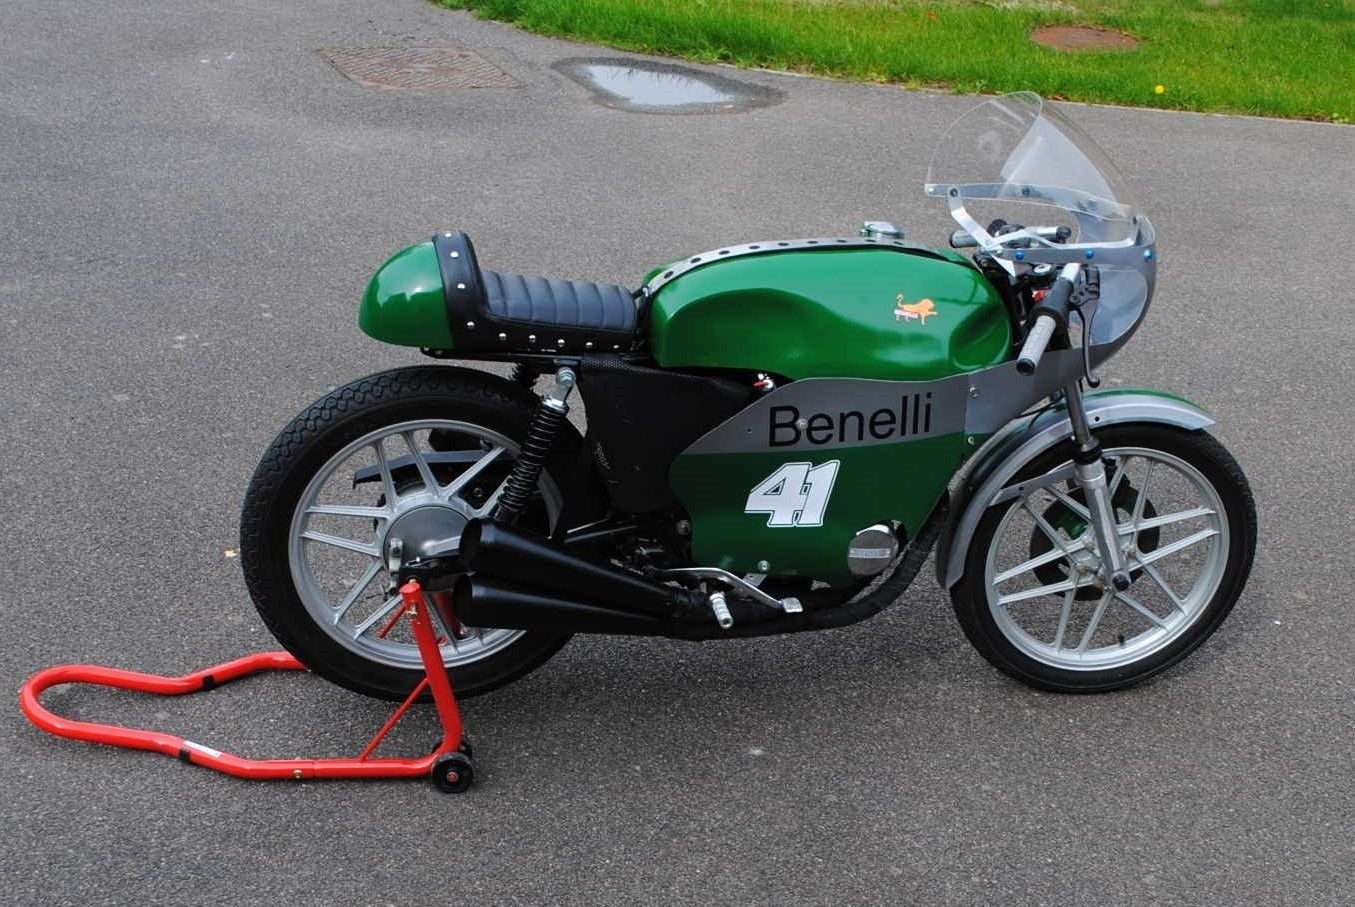 BENELLI 250/4 FOUR CYLINDER CLASSIC RACER PARADE CRMC